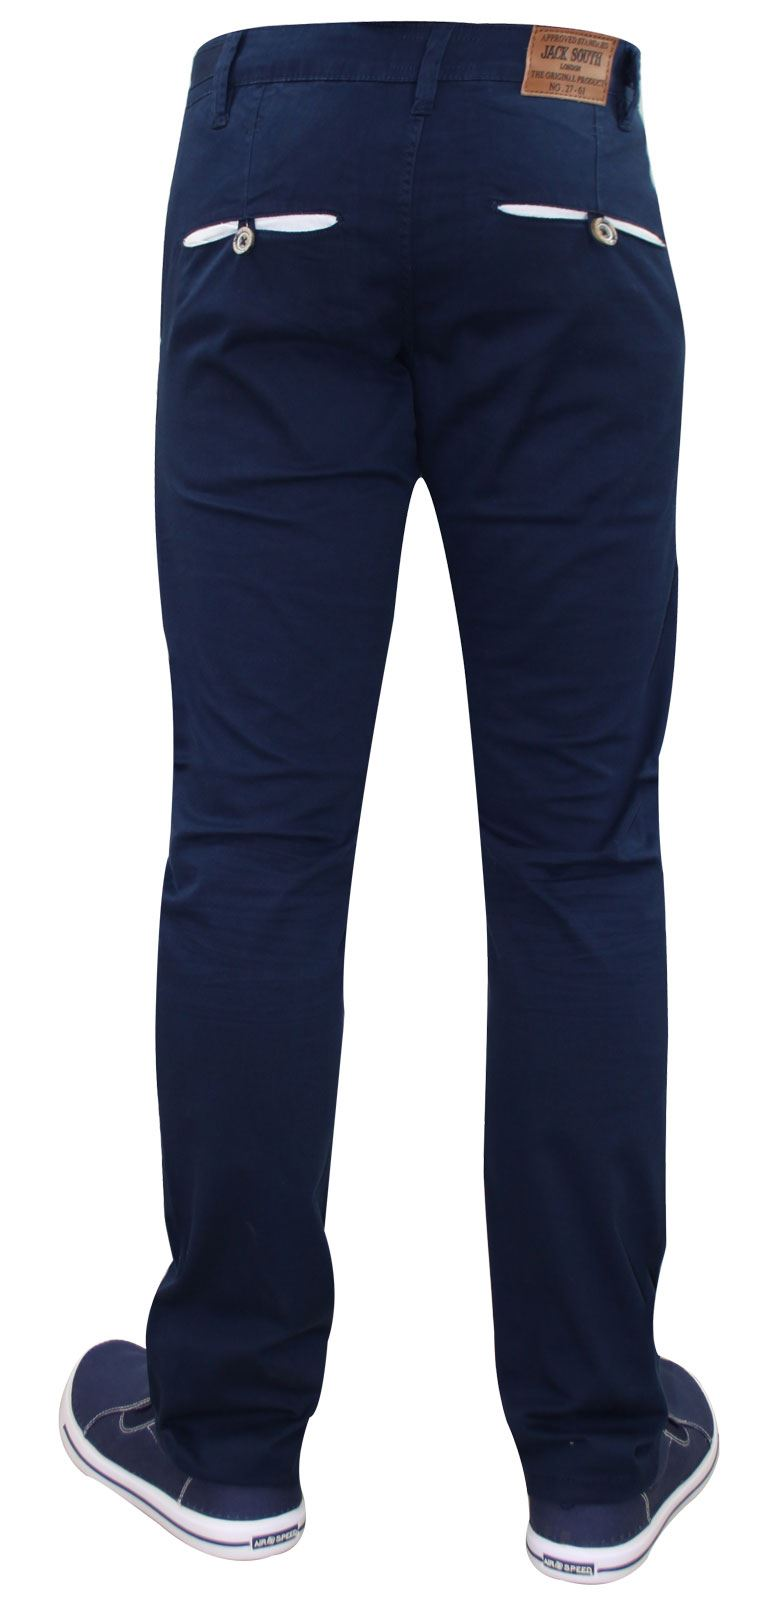 Men-Chinos-Trousers-Regular-Fit-Stretch-Cotton-Jeans-Pants-All-Waist-Sizes thumbnail 17